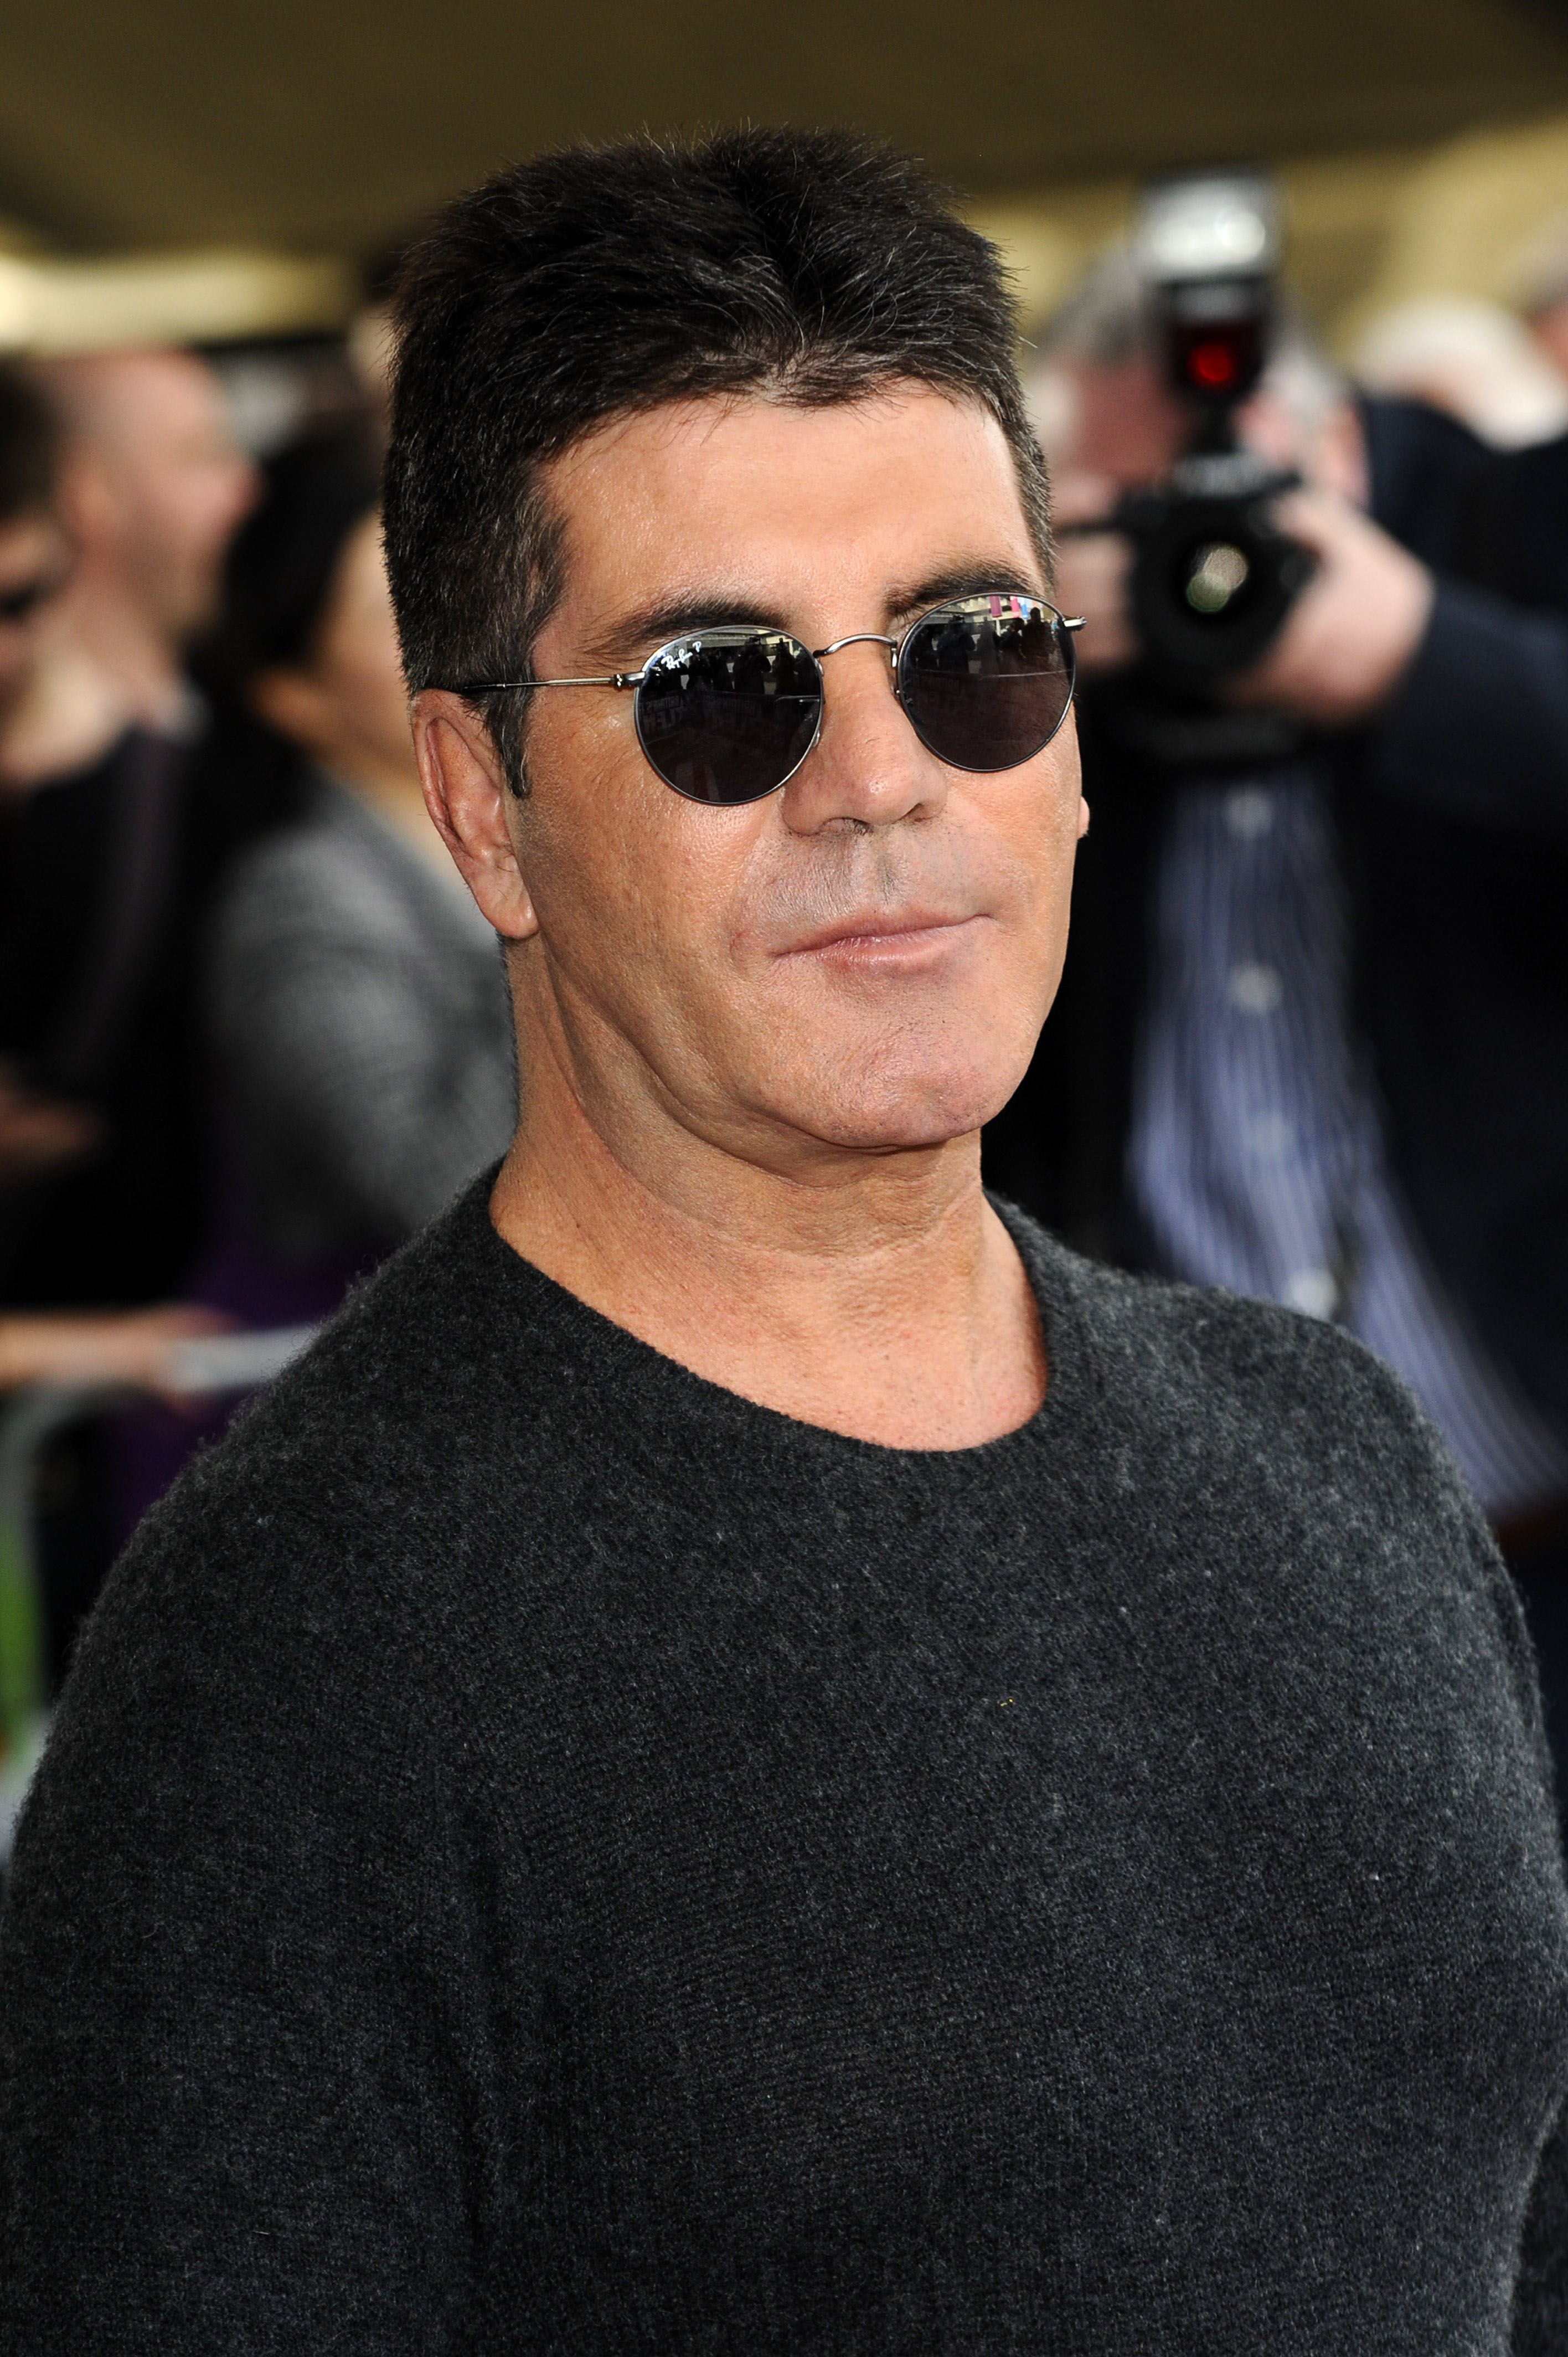 simon cowell burglary